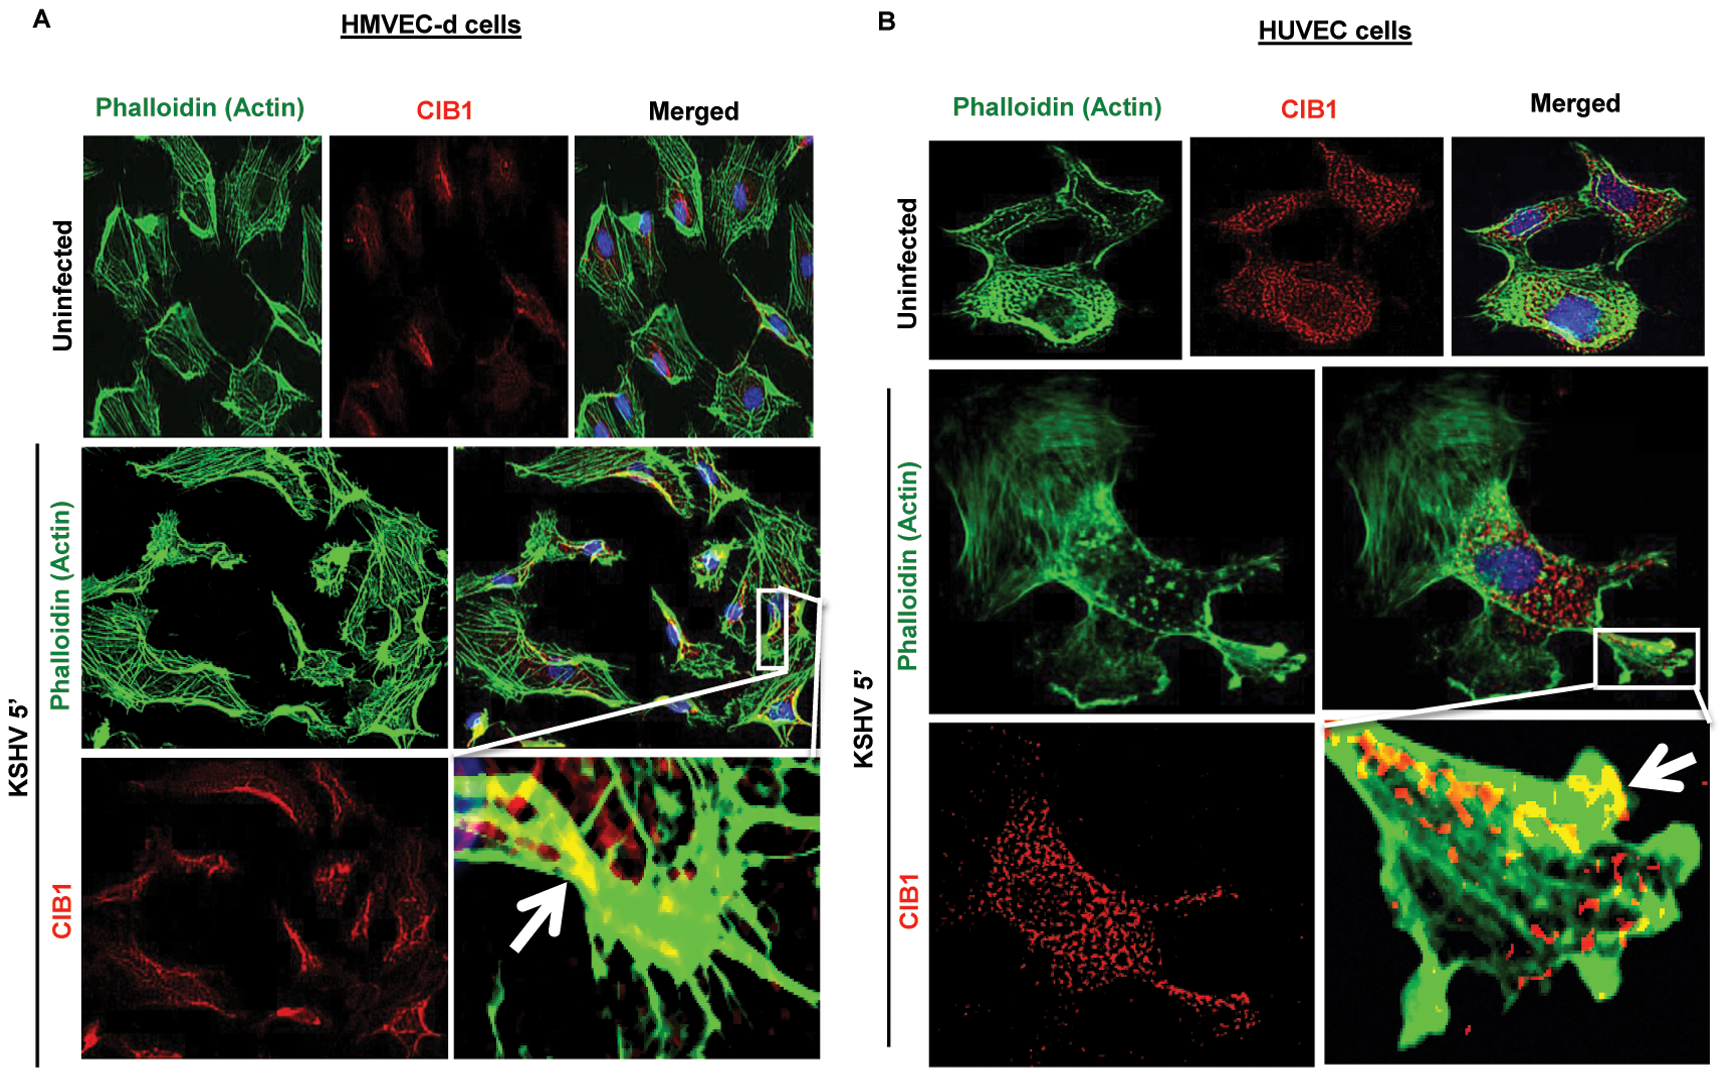 CIB1 association with actin protrusions during <i>de novo</i> KSHV infection in endothelial cells.